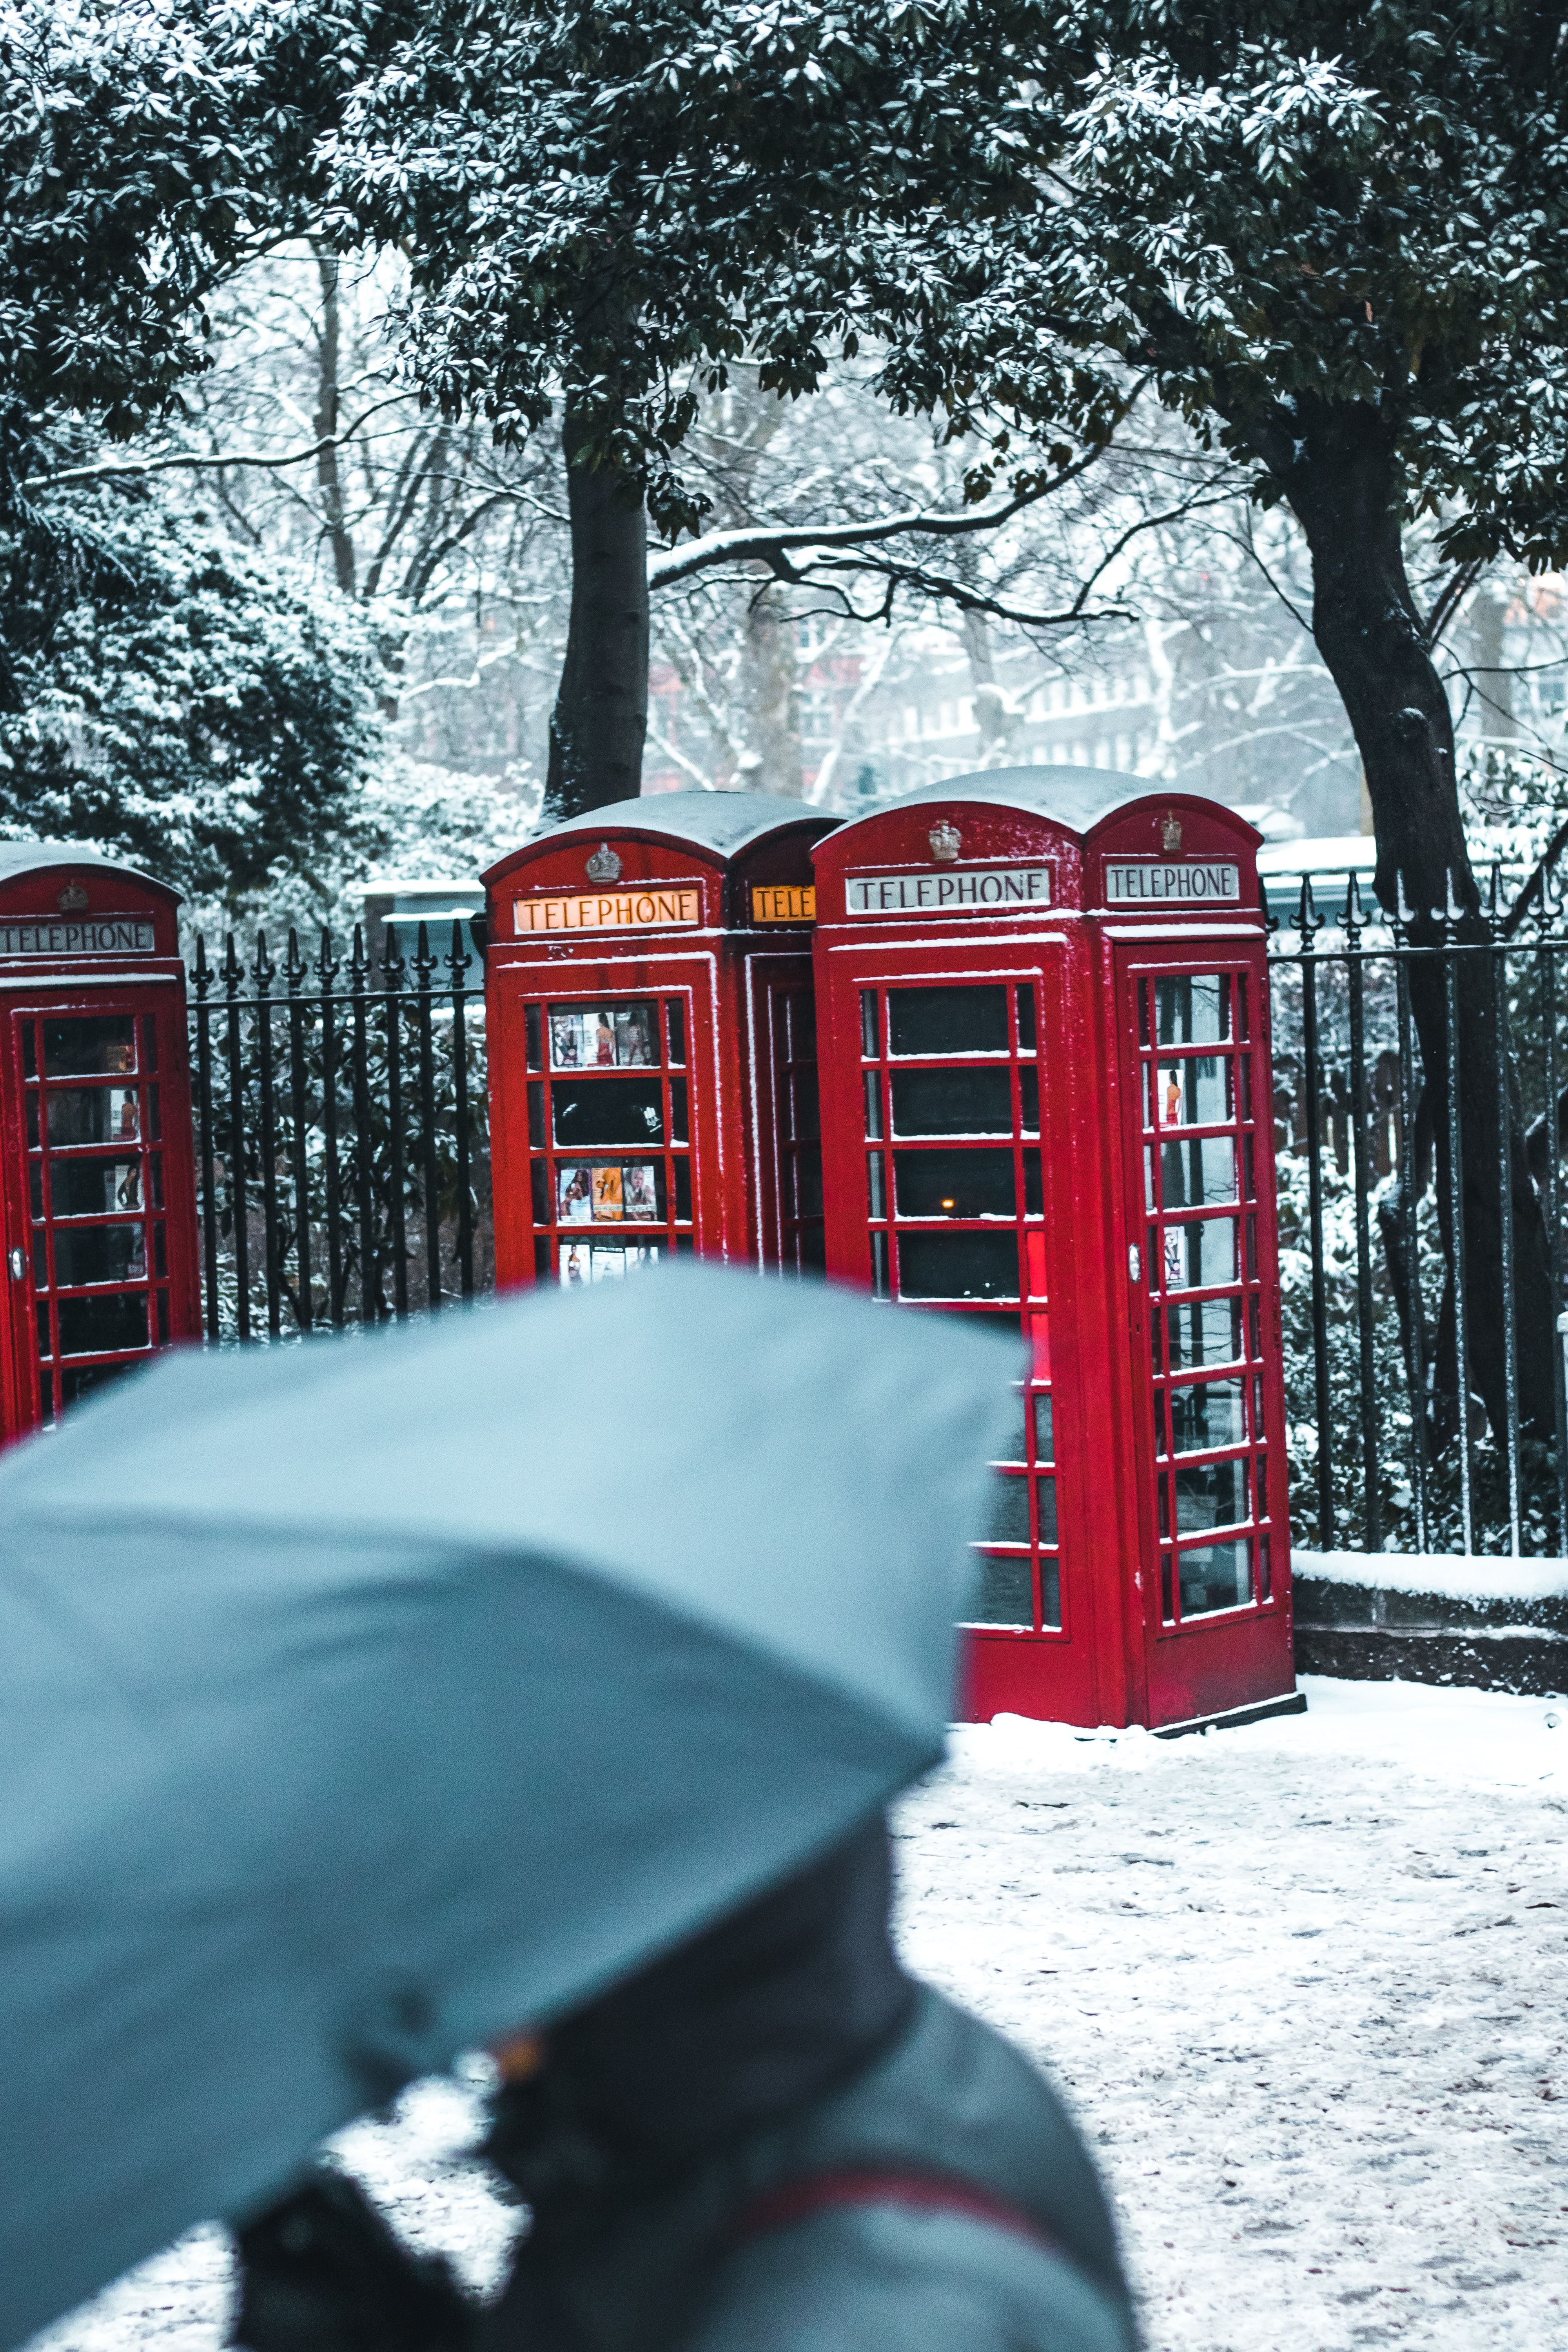 red telephone booths behind black steel fence during snow season